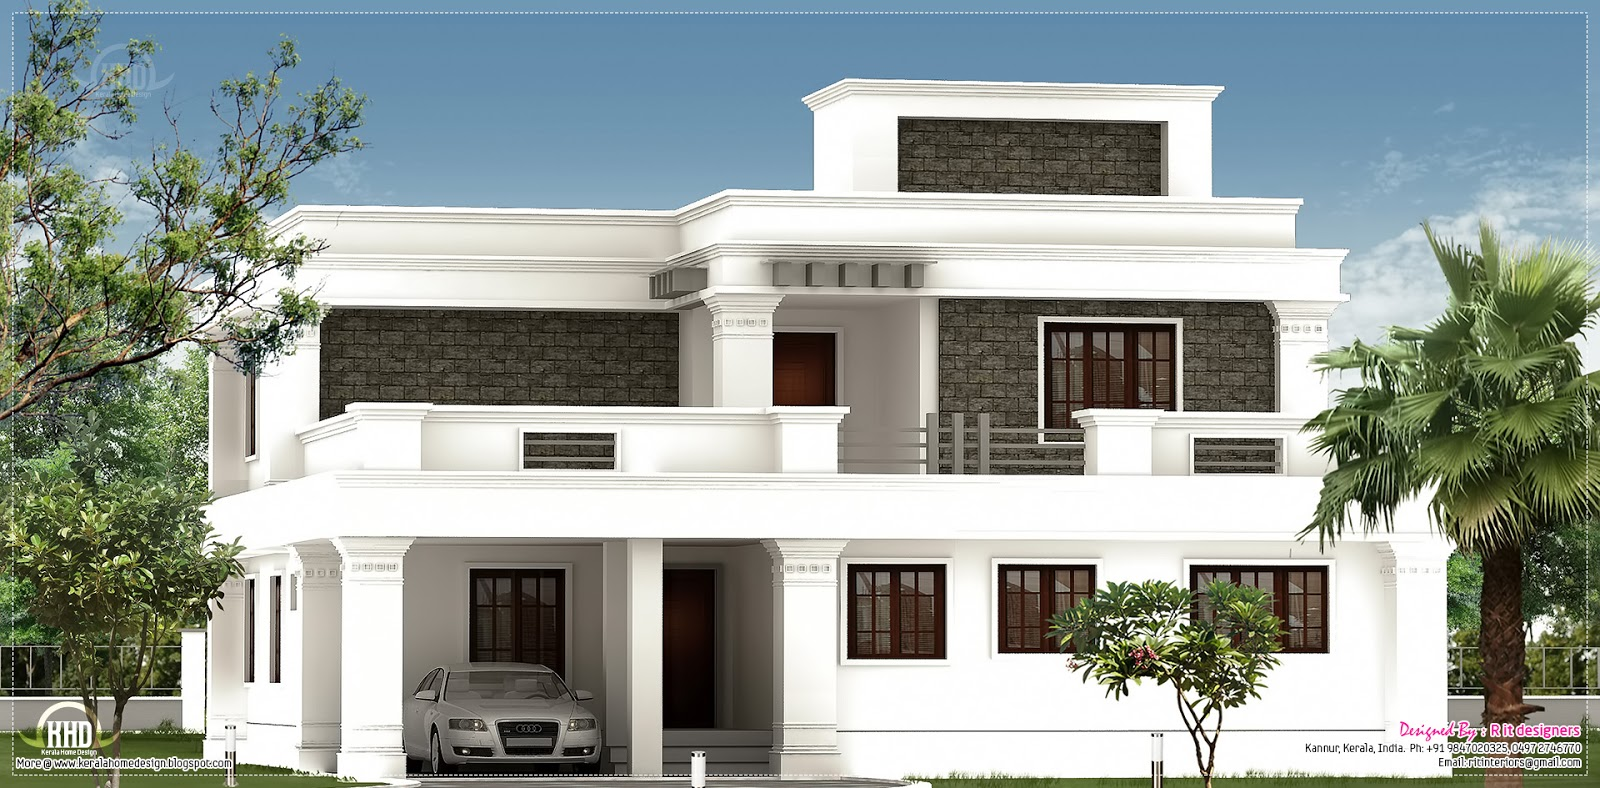 House design picture - Flat Roof Villa House Details